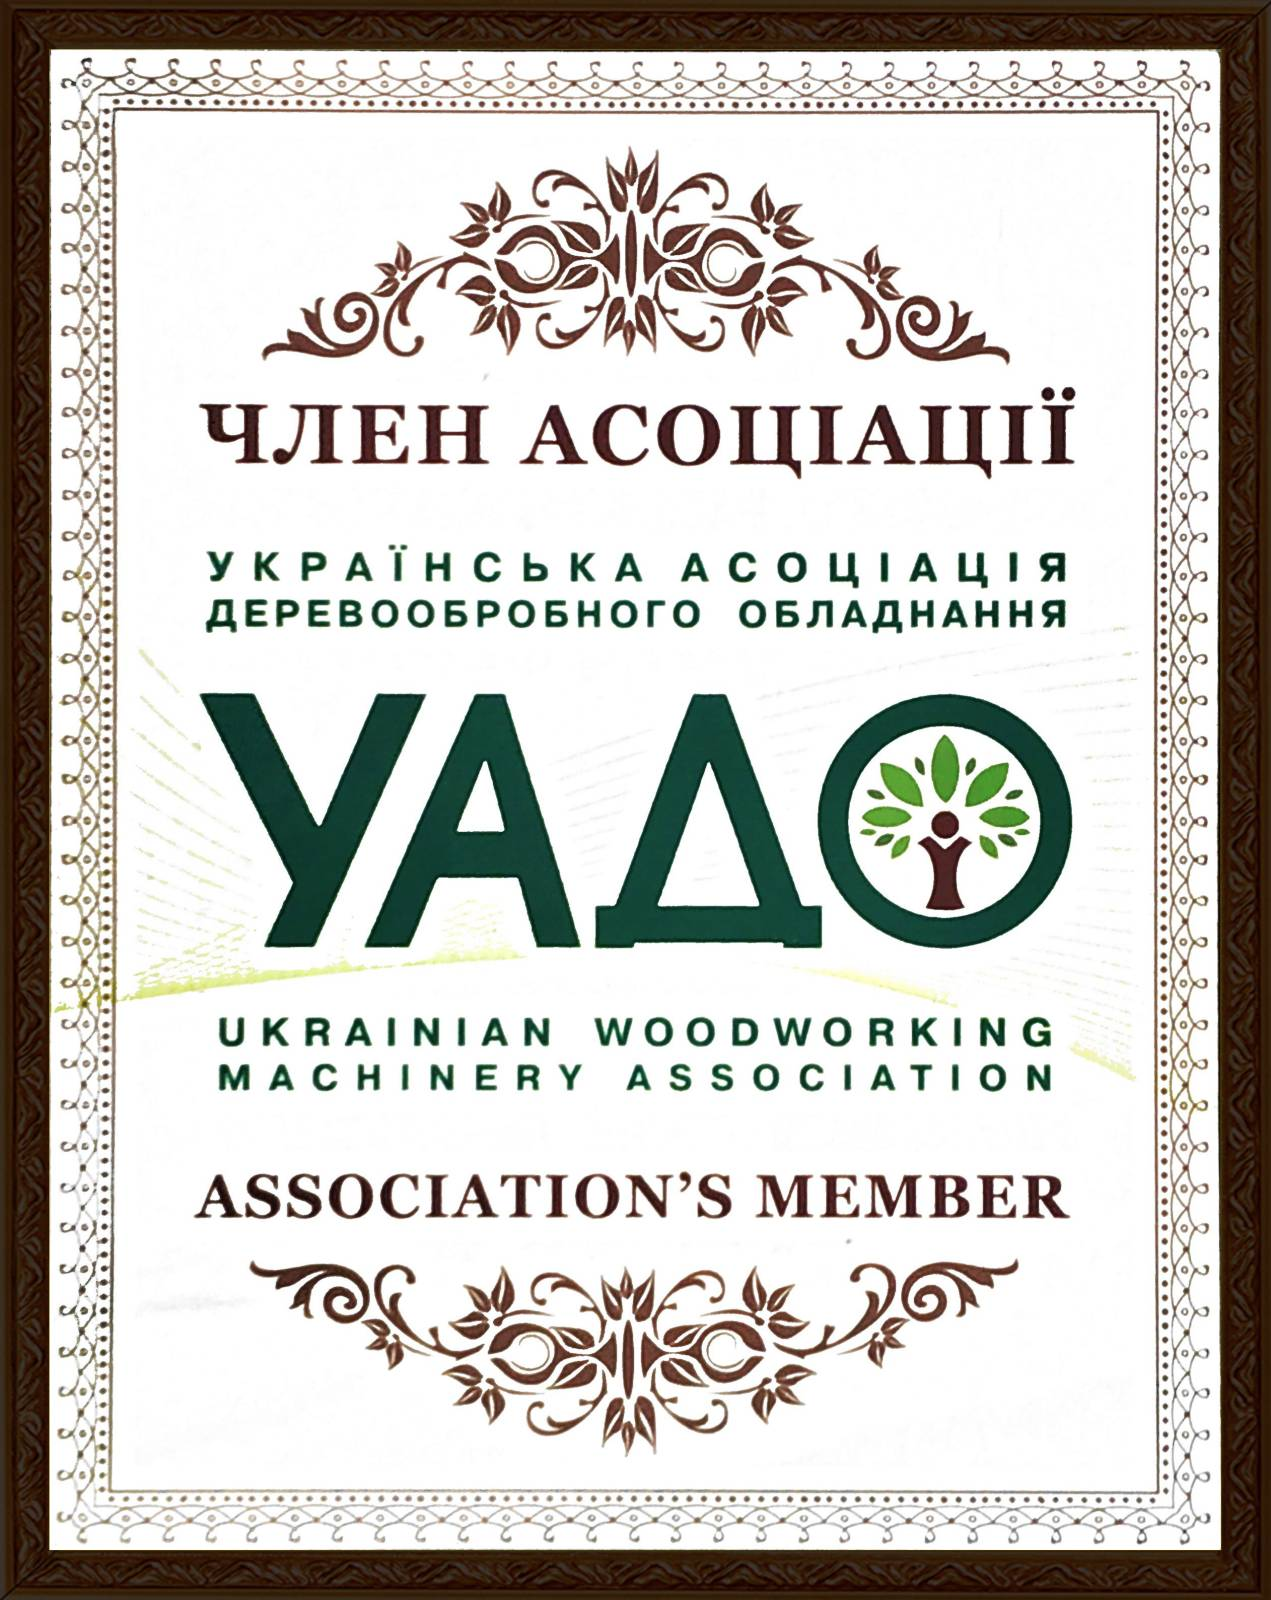 Arpal has joined the Ukrainian Association of Woodworking Machinery